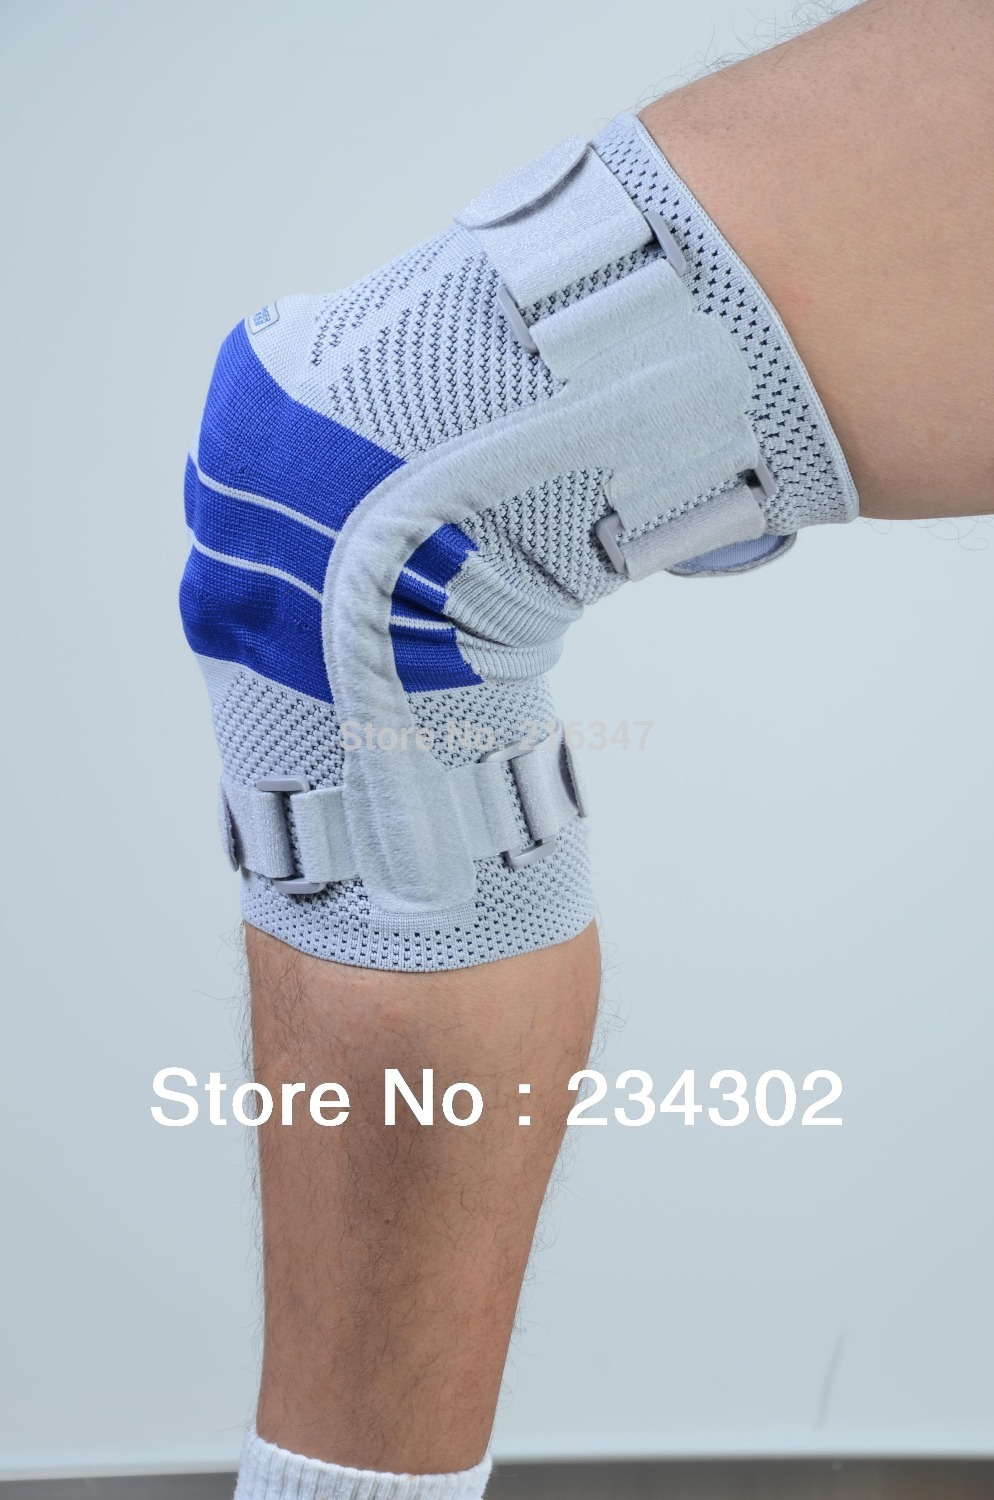 62a0203dfa 2XL hot new spandex nylon elastic volleyball basketball knee pads patella  strap knee brace support protector